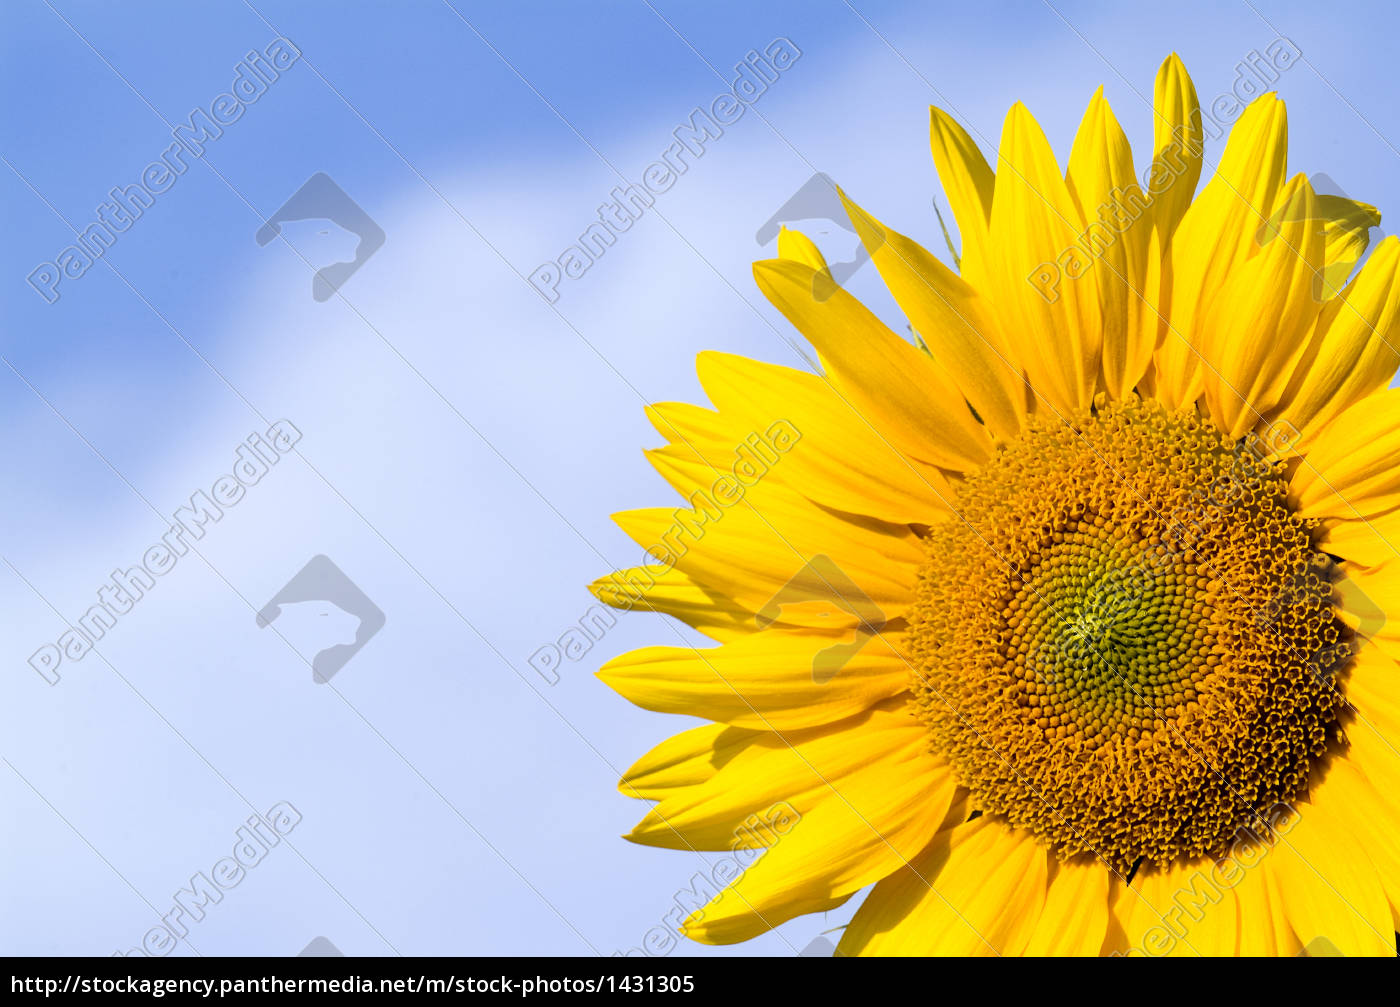 sunflower - 1431305